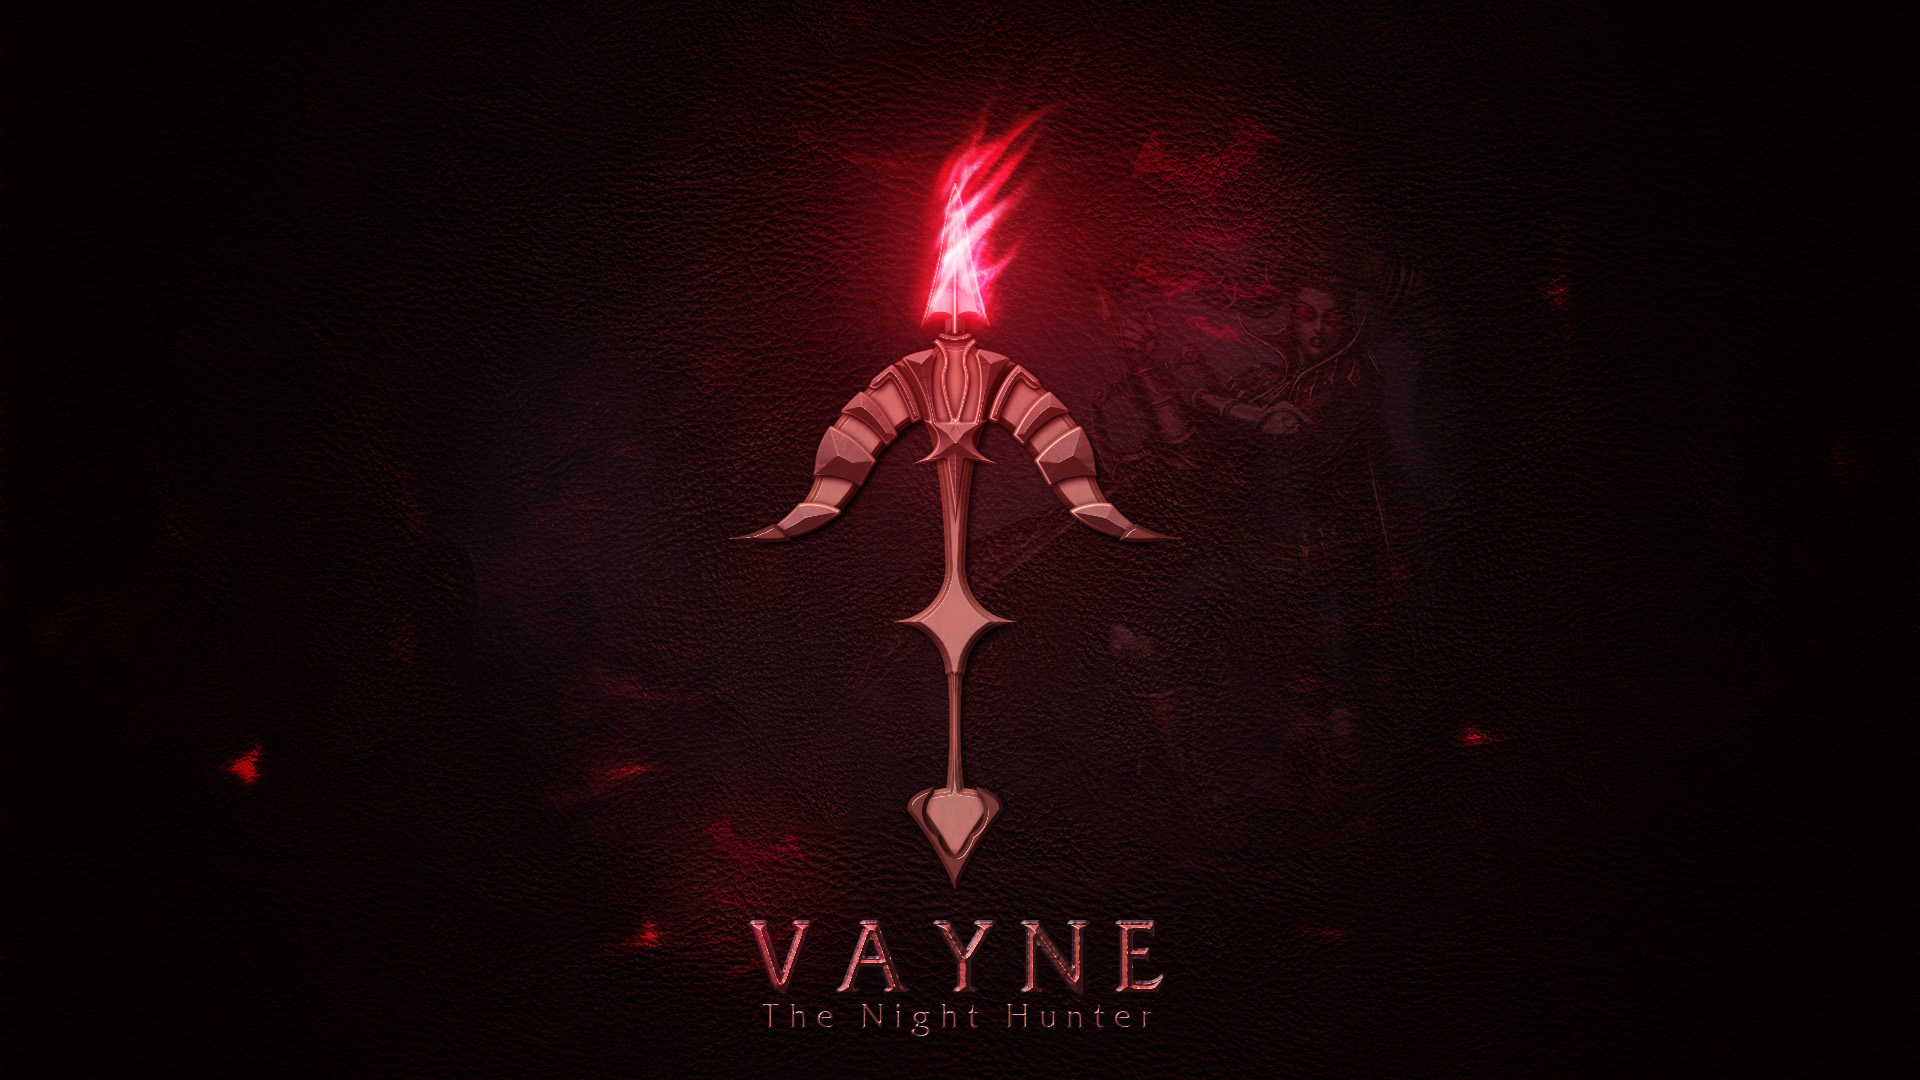 Vayne League Of Legends Wallpapers HD 1920x1080